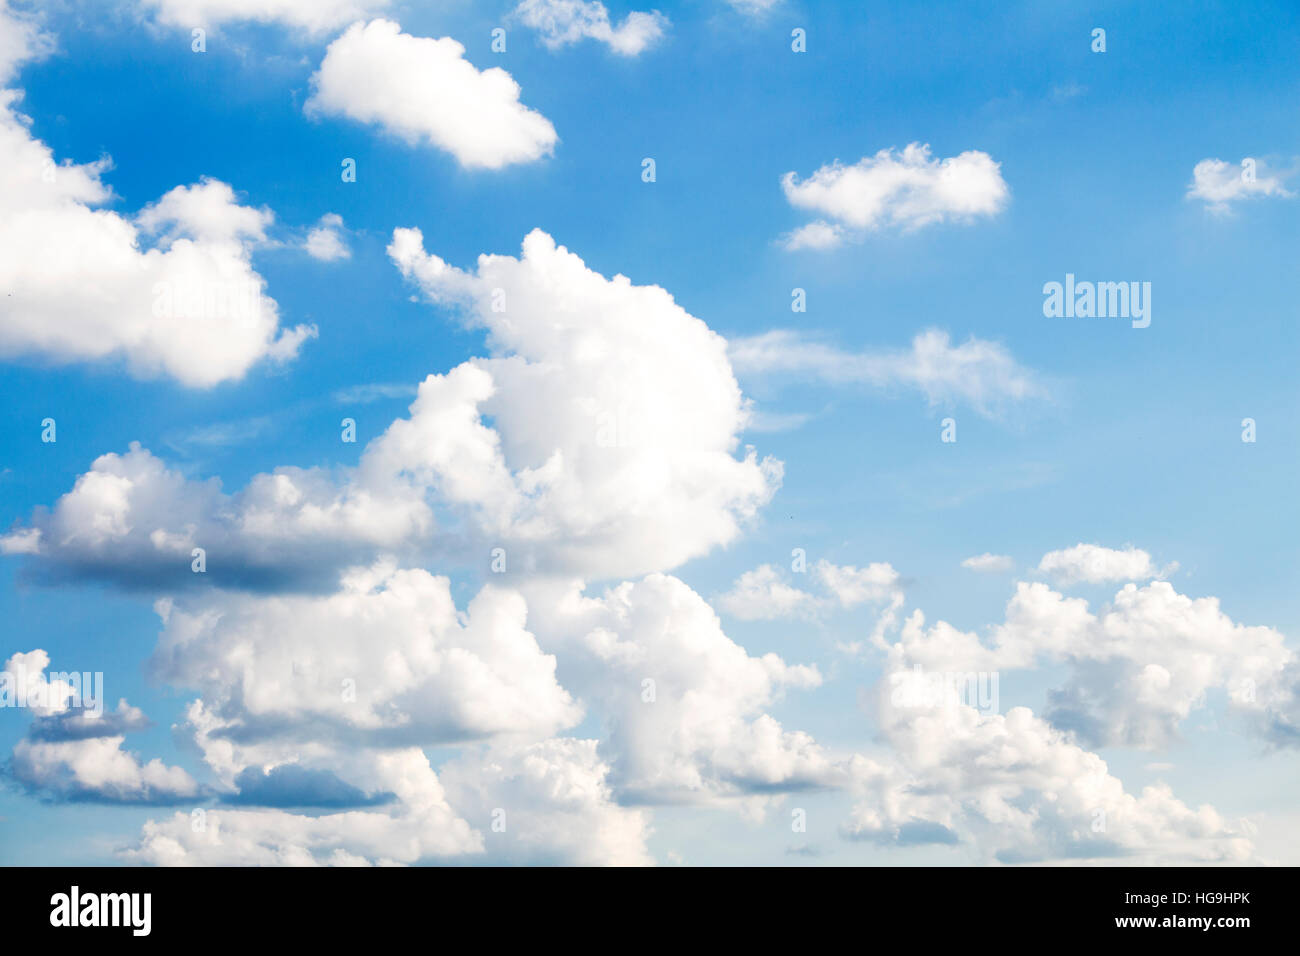 White Fluffy clouds on clear blue sky - Stock Image